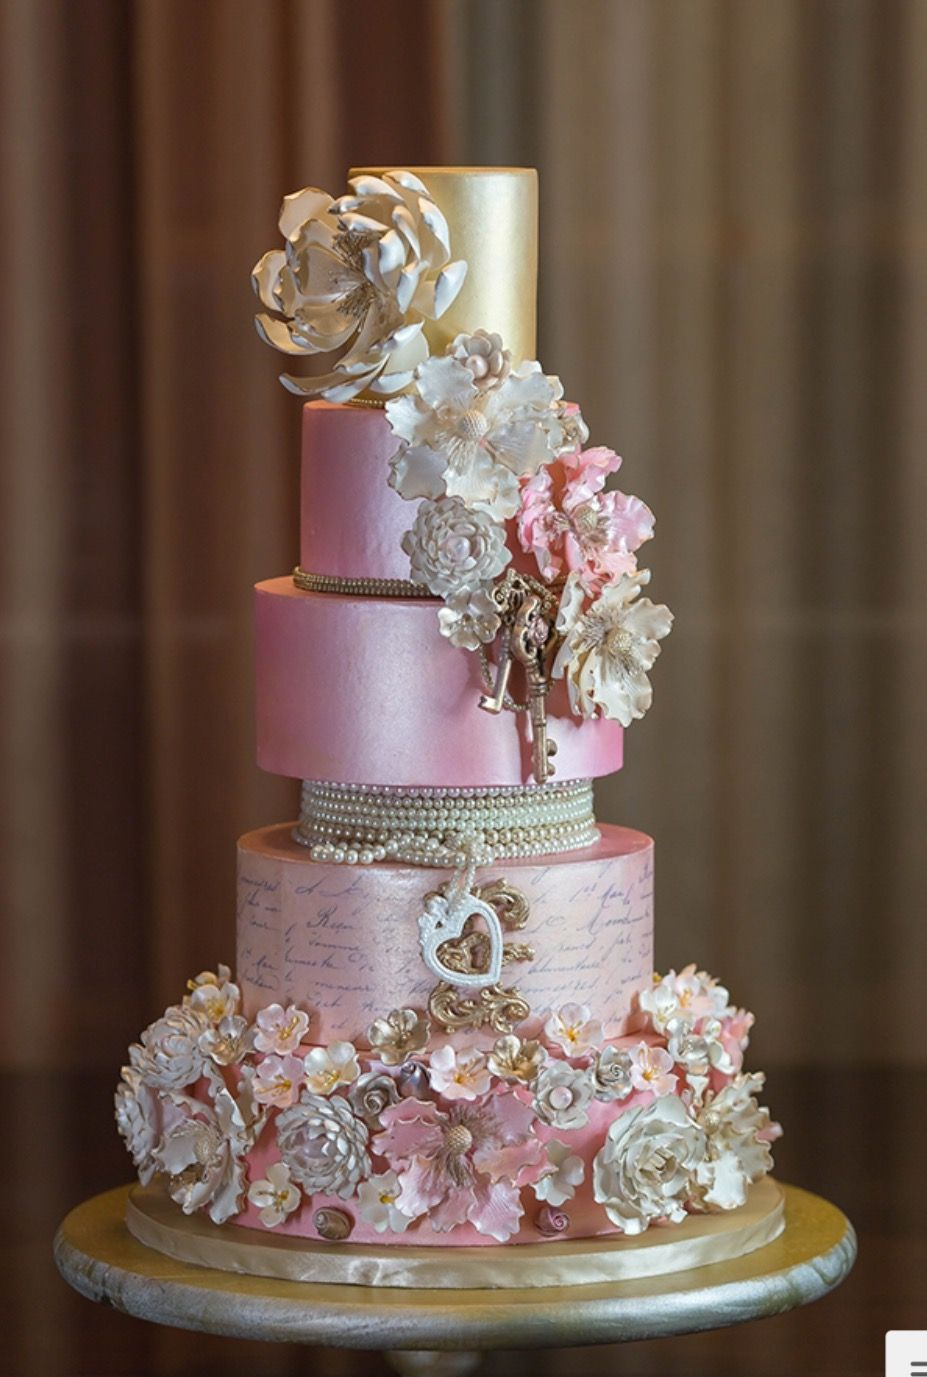 Pin by dawn jones on exceptional cakes pinterest cake wedding